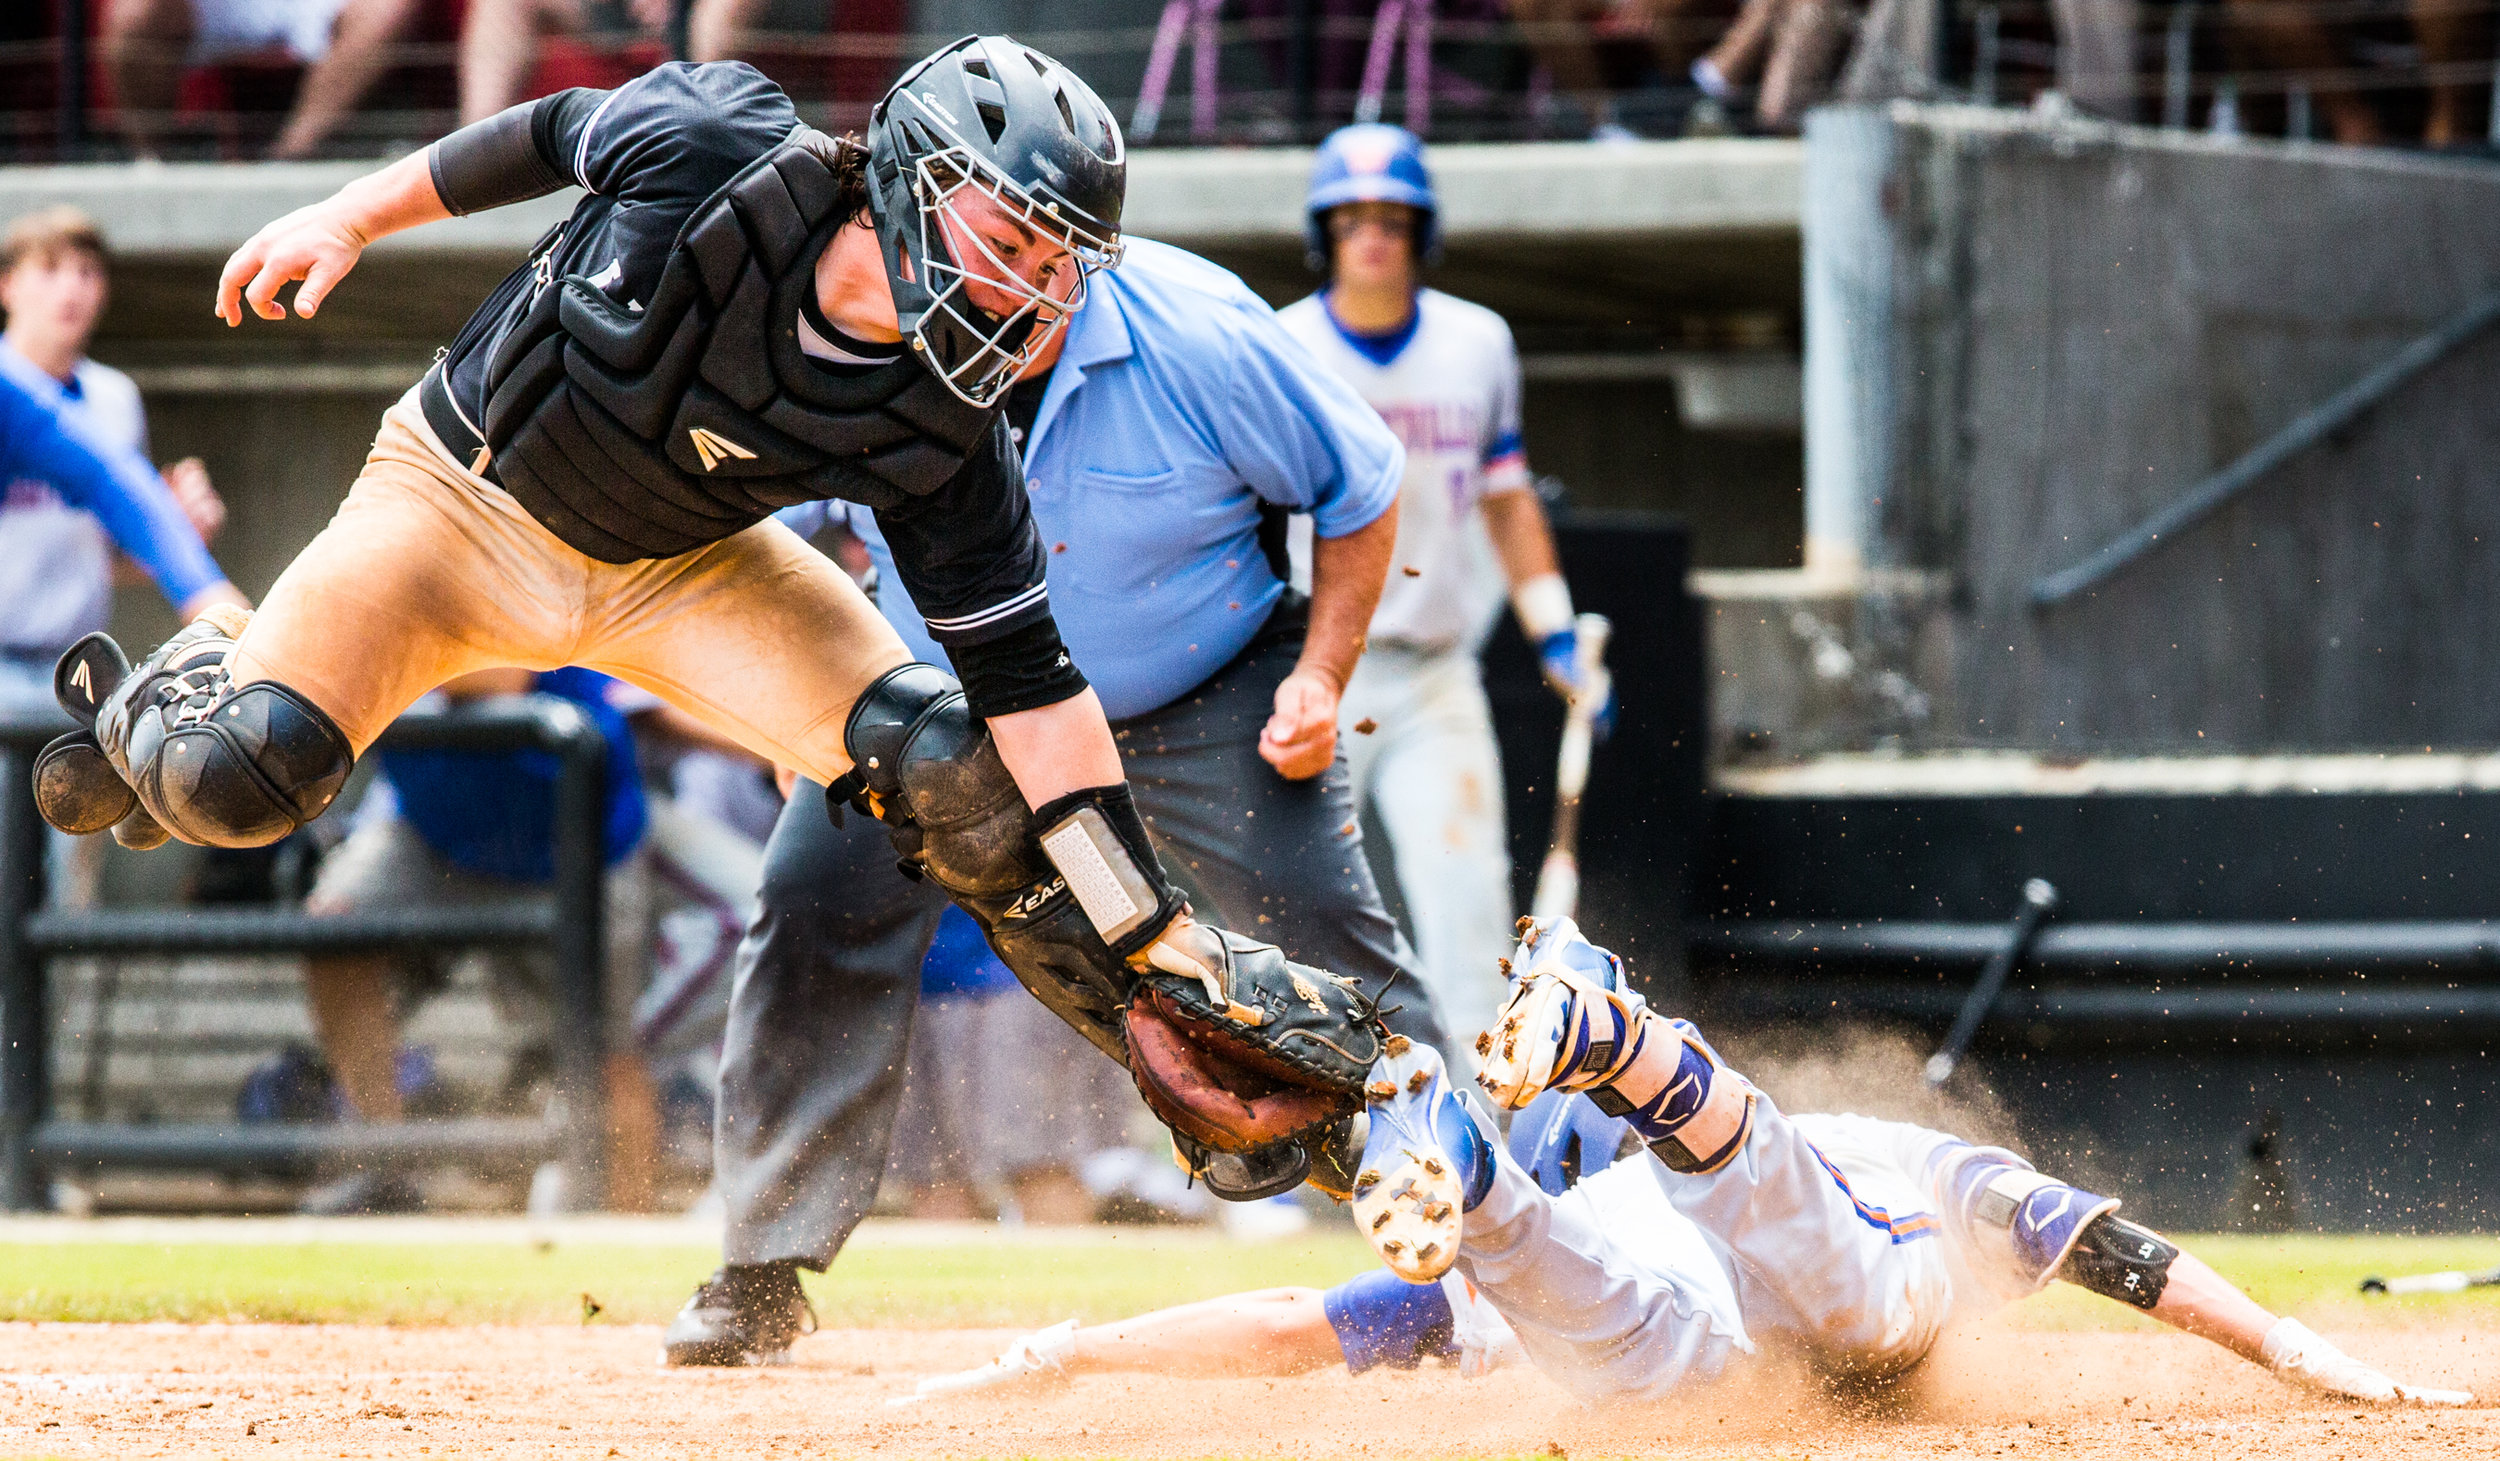 Ledford's Avery Cain (left) attempts a tag on Whiteville's Brooks Baldwin as he safely arrives at home for an inside-the-park home run during their game on Saturday morning at Five County Stadium in Zebulon. [Dan Busey/The Dispatch]